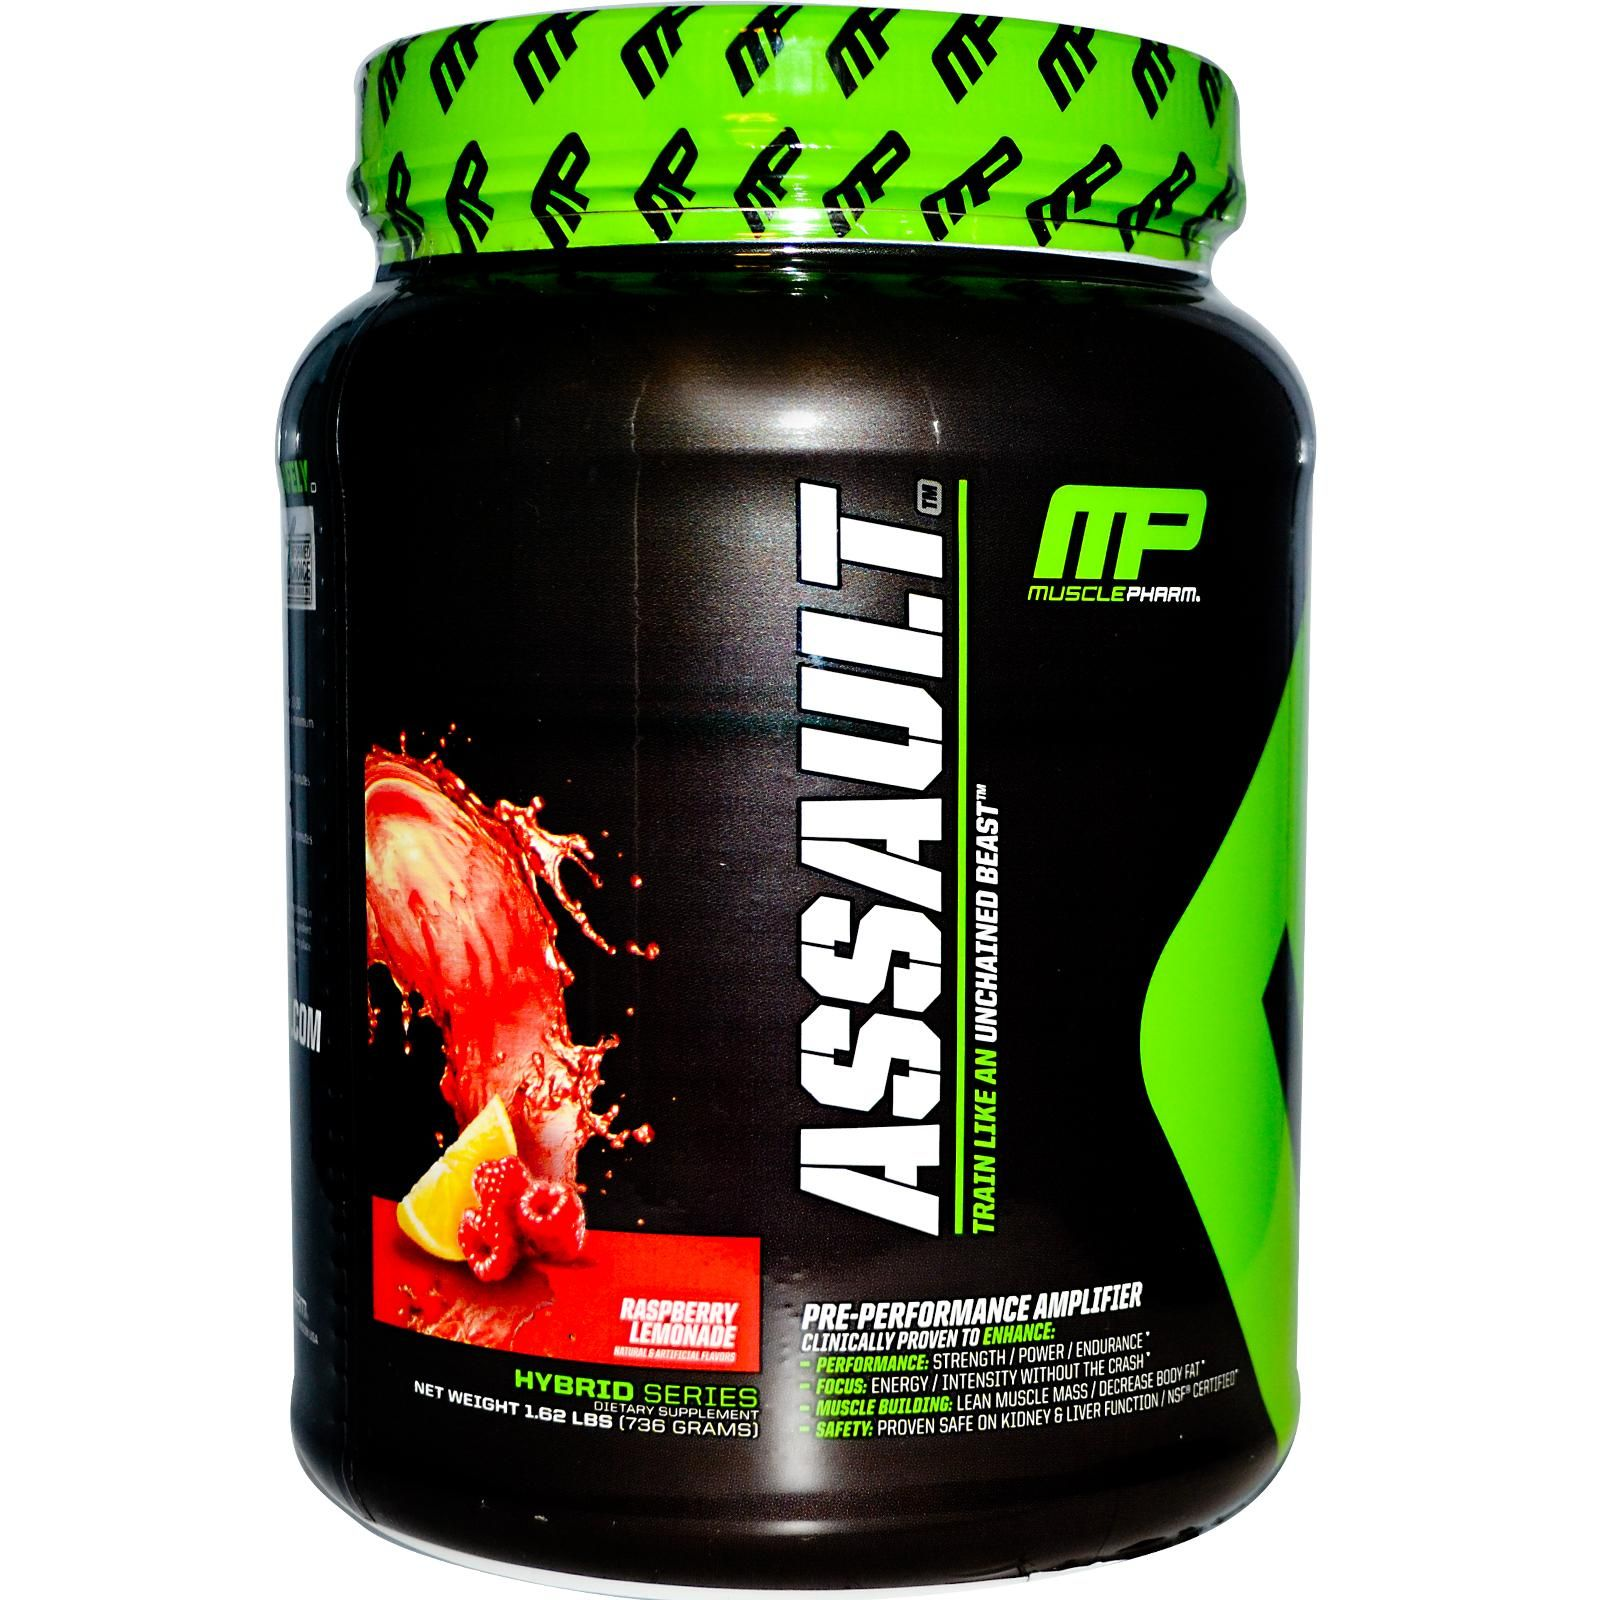 Groupon Deal Right Now Muscle Pharm Ault In My Top 3 Pre